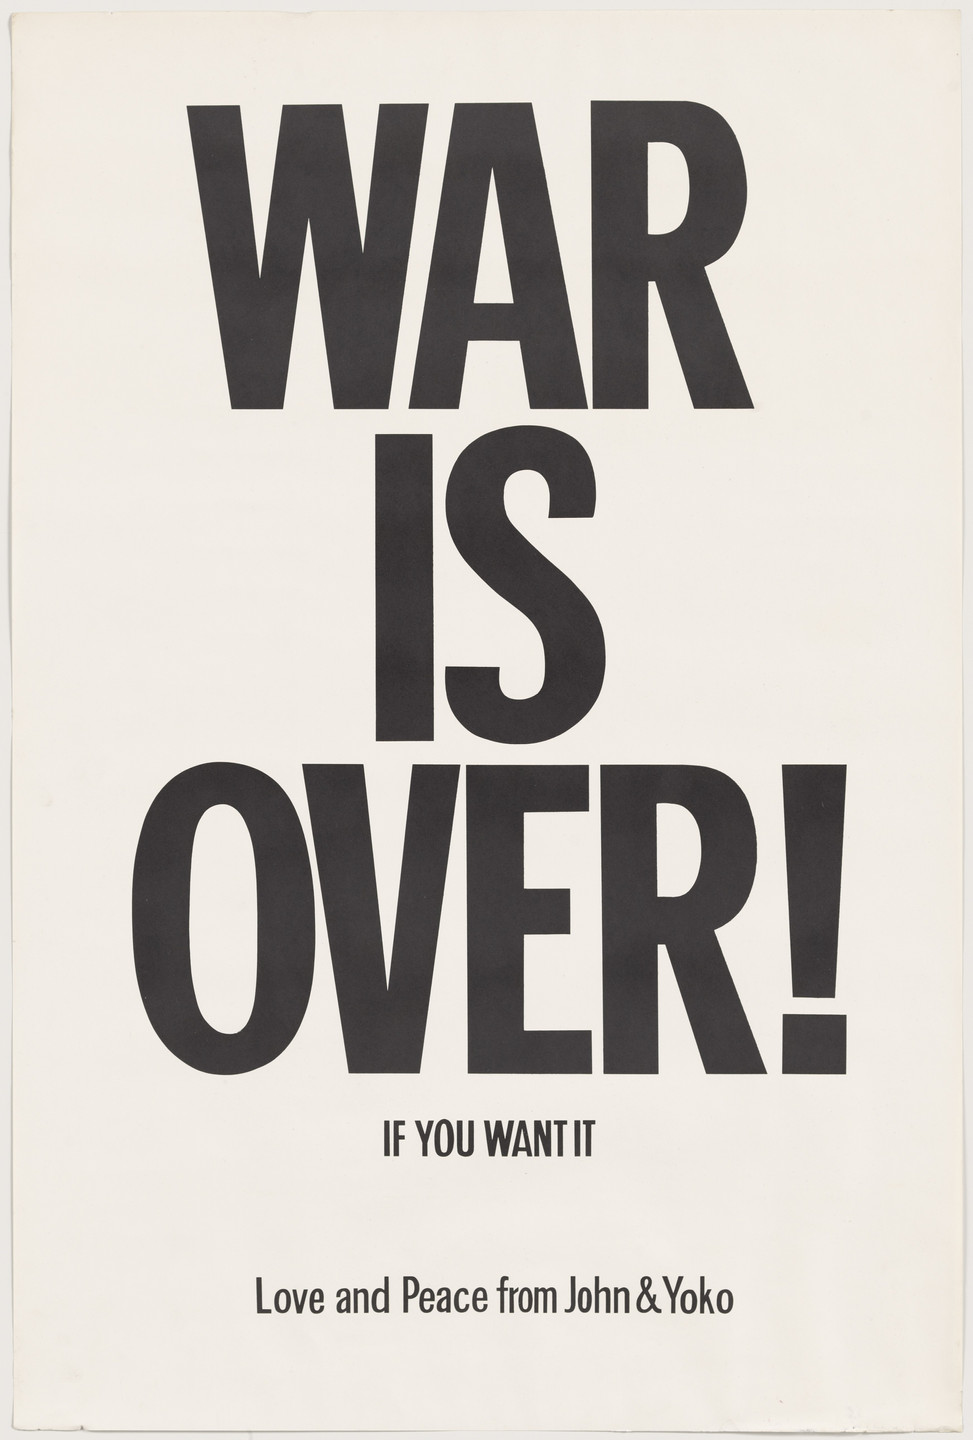 Yoko Ono, John Lennon. WAR IS OVER!. 1969